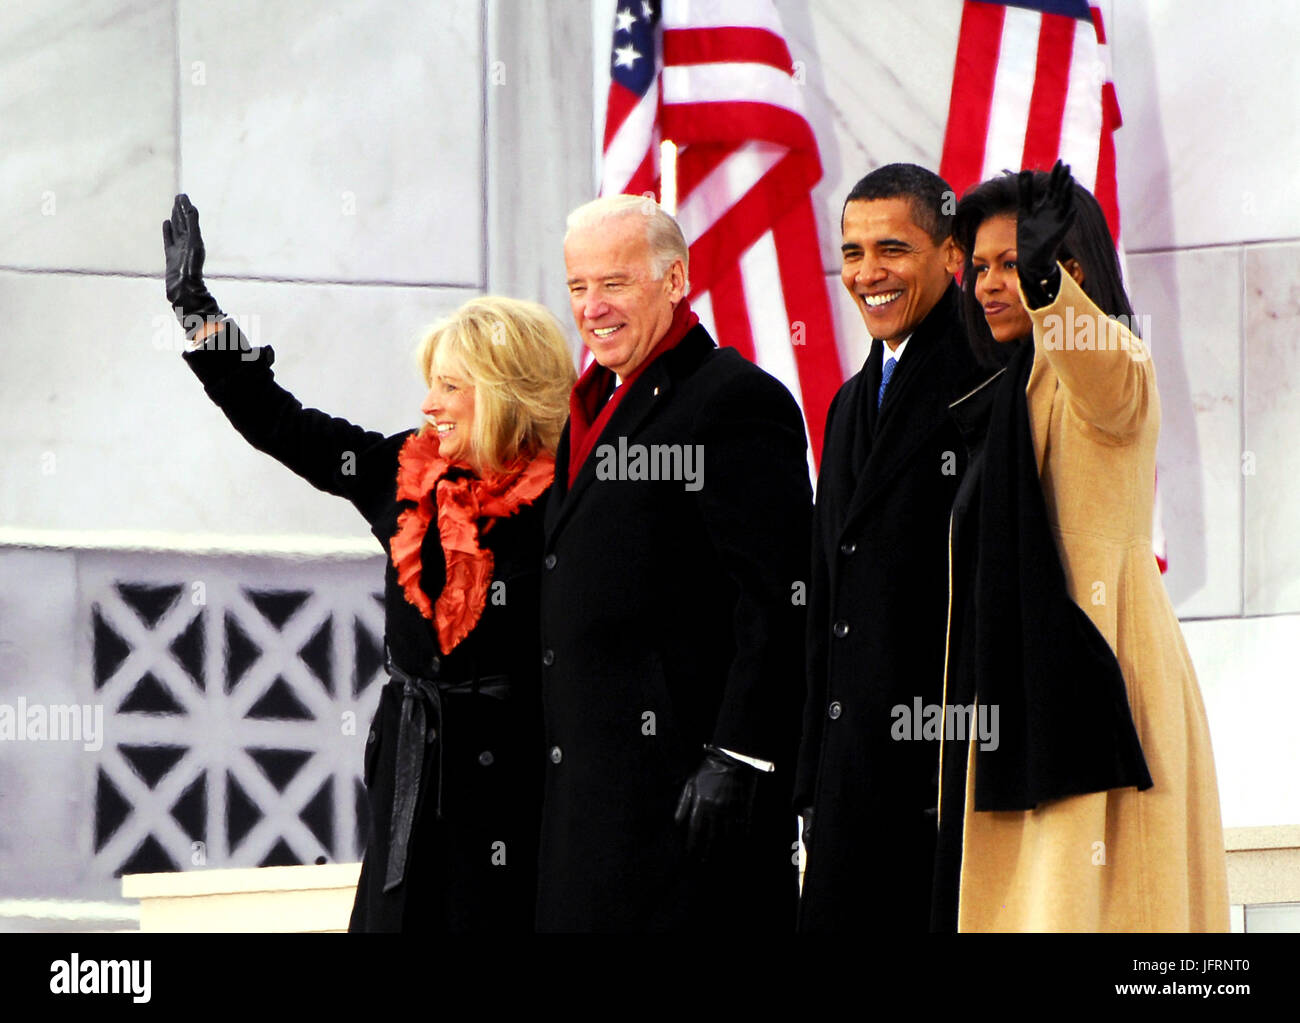 Jill Biden, Vice President-elect Joe Biden, President-elect Barack Obama, and Michelle Obama wave to the crowd gathered - Stock Image